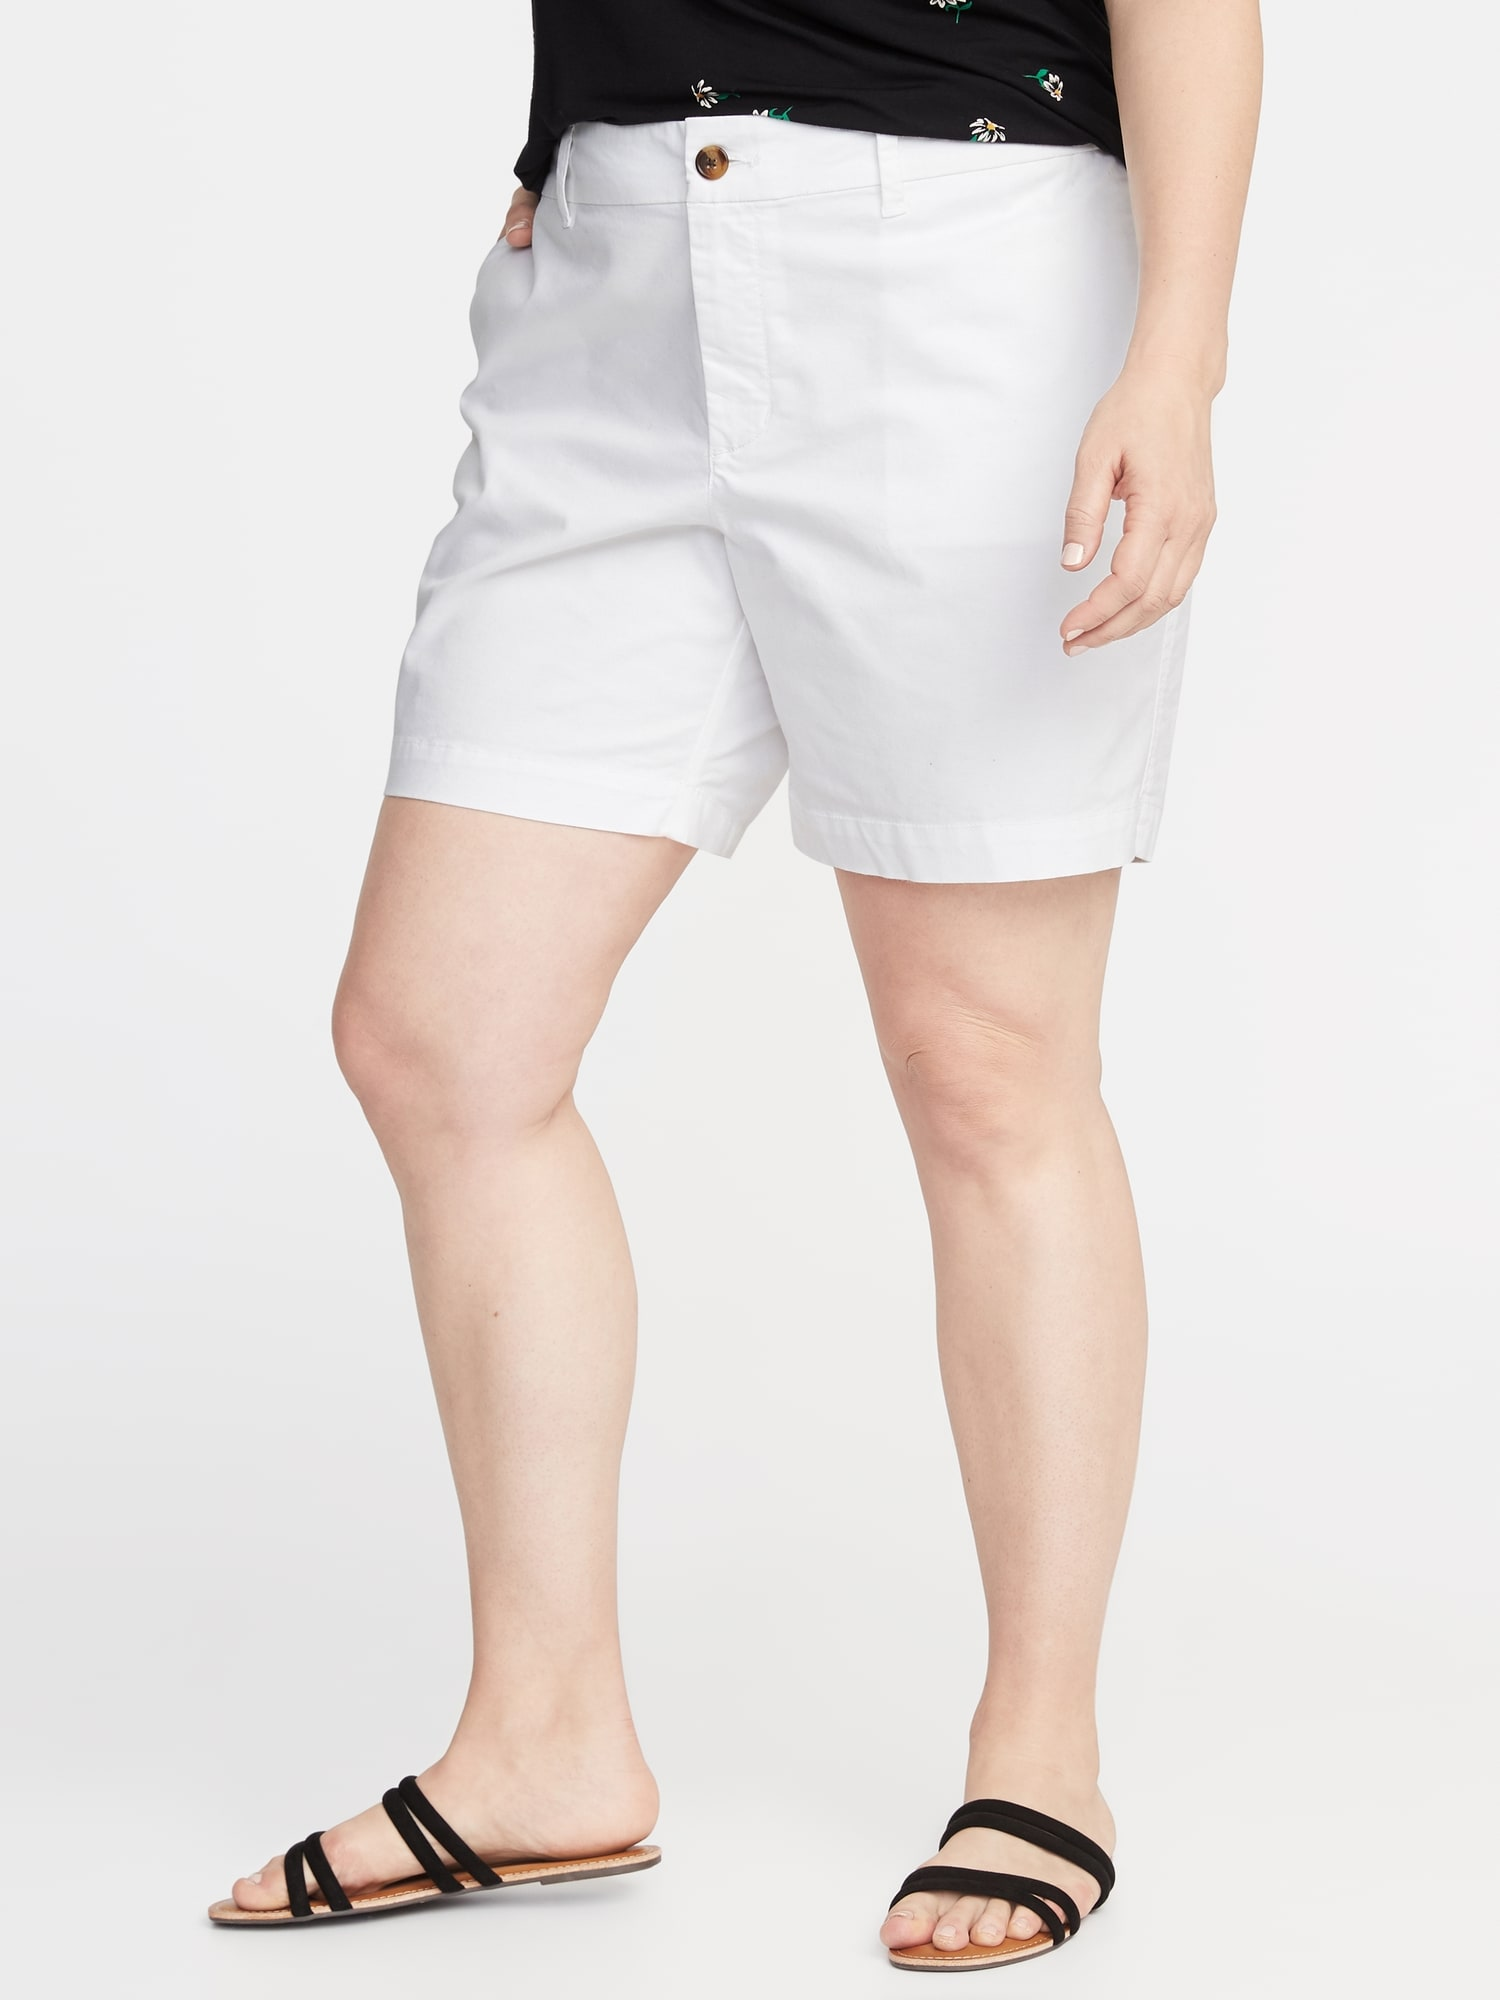 Old Navy Mid-Rise Plus-Size Twill Everyday Shorts - 7-Inch Inseam